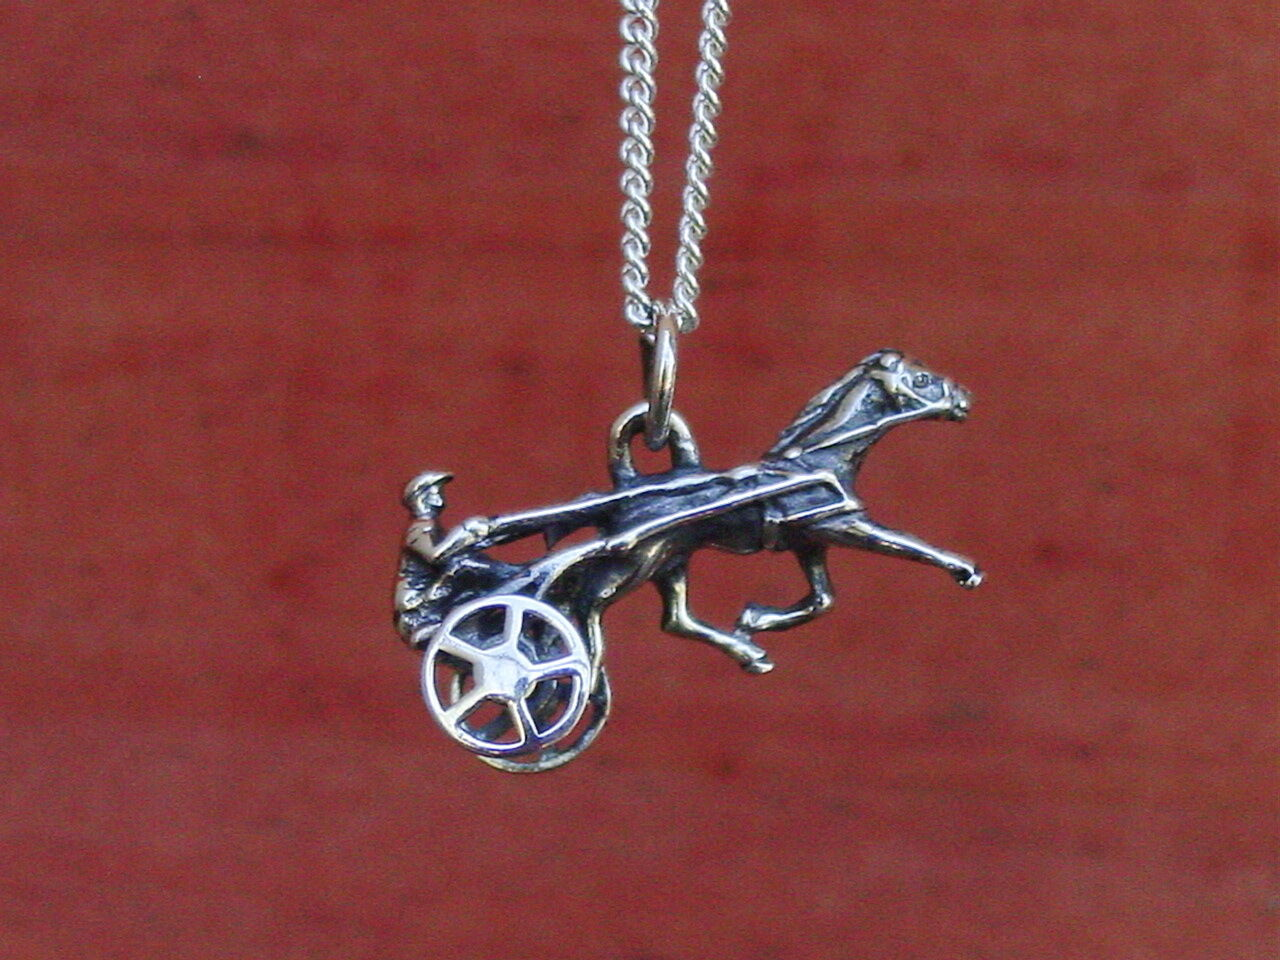 Harness Racing  Moving Sulky Wheel Tredter Pendant Equestrian With Chain  with cheap price to get top brand